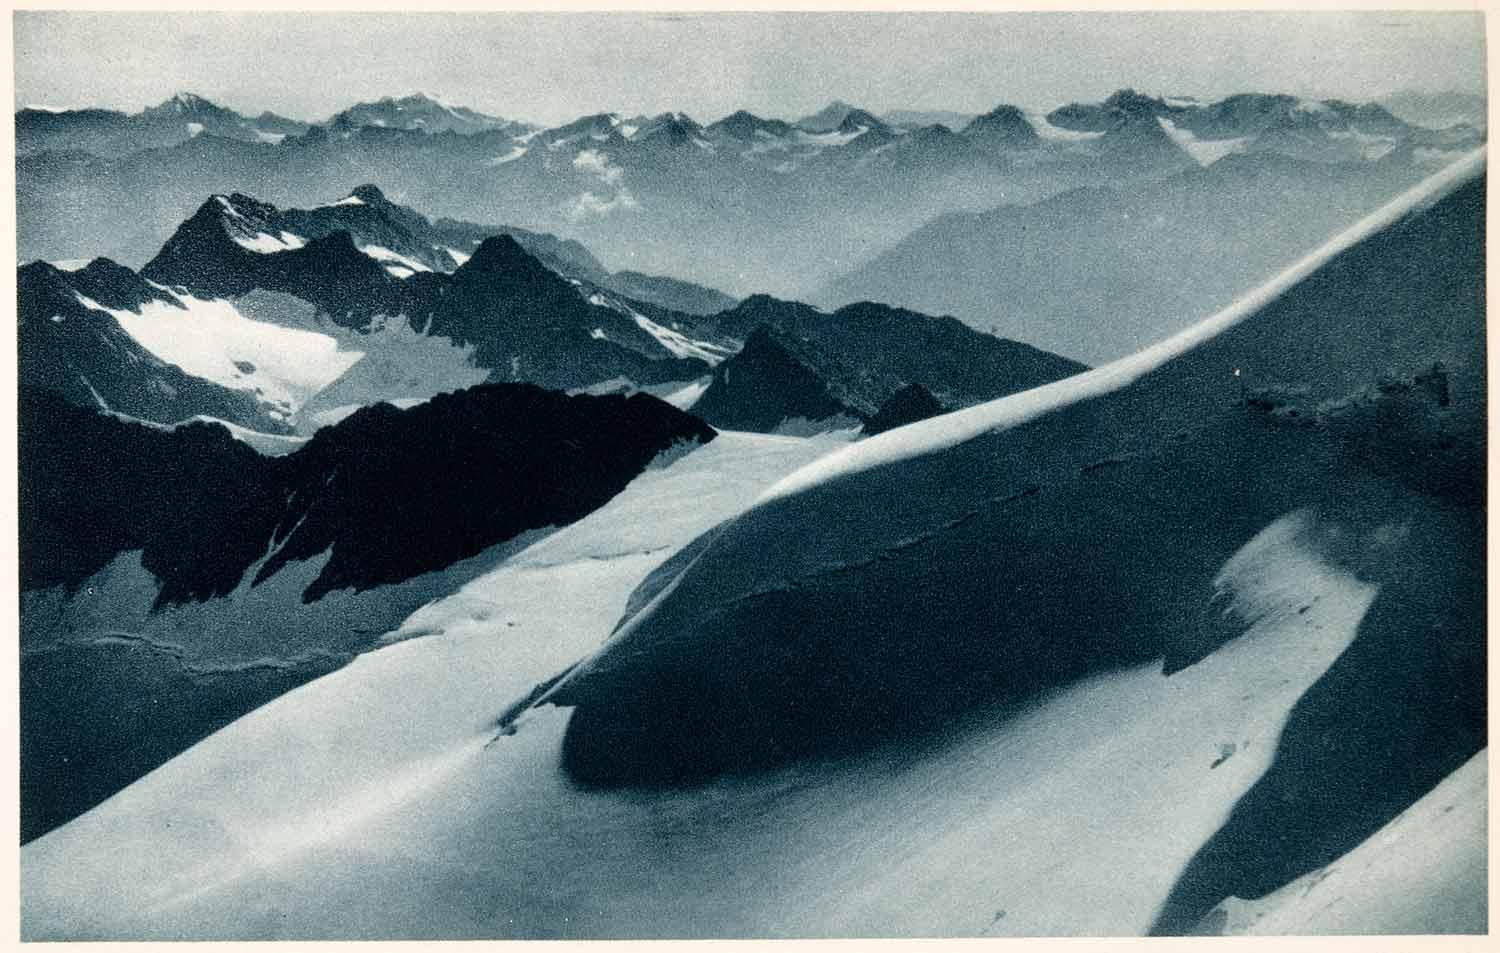 1937 Photogravure Otztal Alps Austria Tyrol Mountains Ranges Europe Snow XGDA6